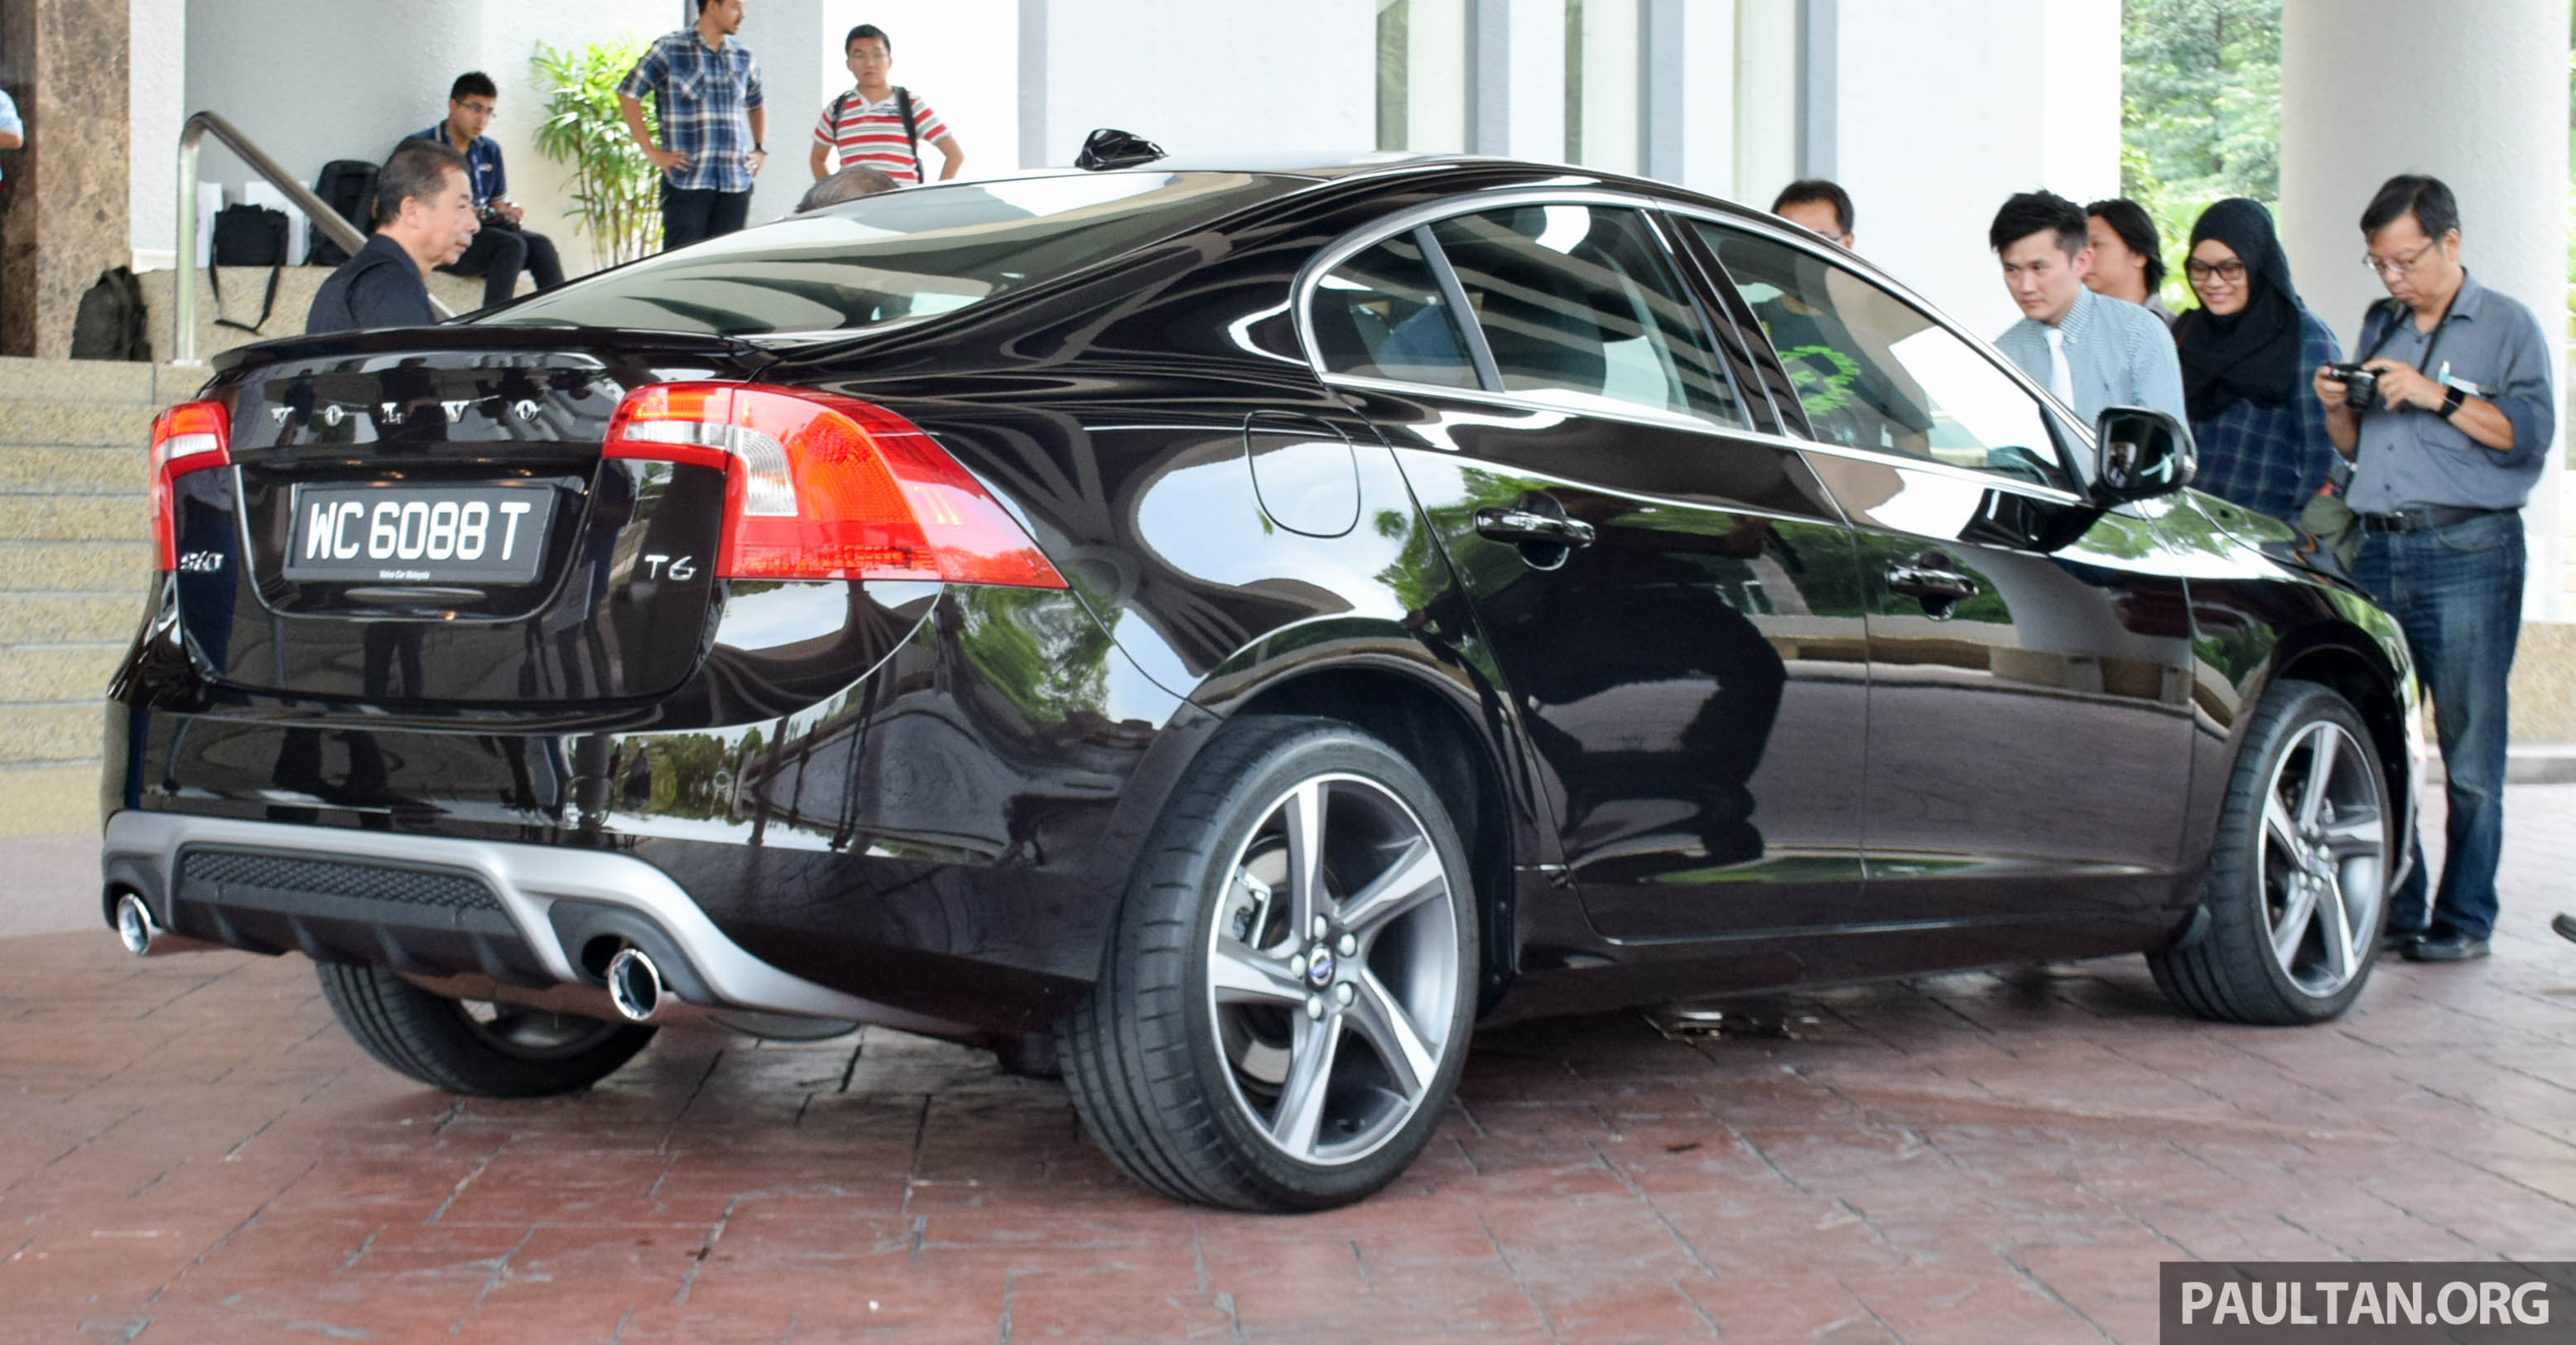 volvo s60 t6 drive e launched 306 hp ckd rm280k paul tan image 494667. Black Bedroom Furniture Sets. Home Design Ideas